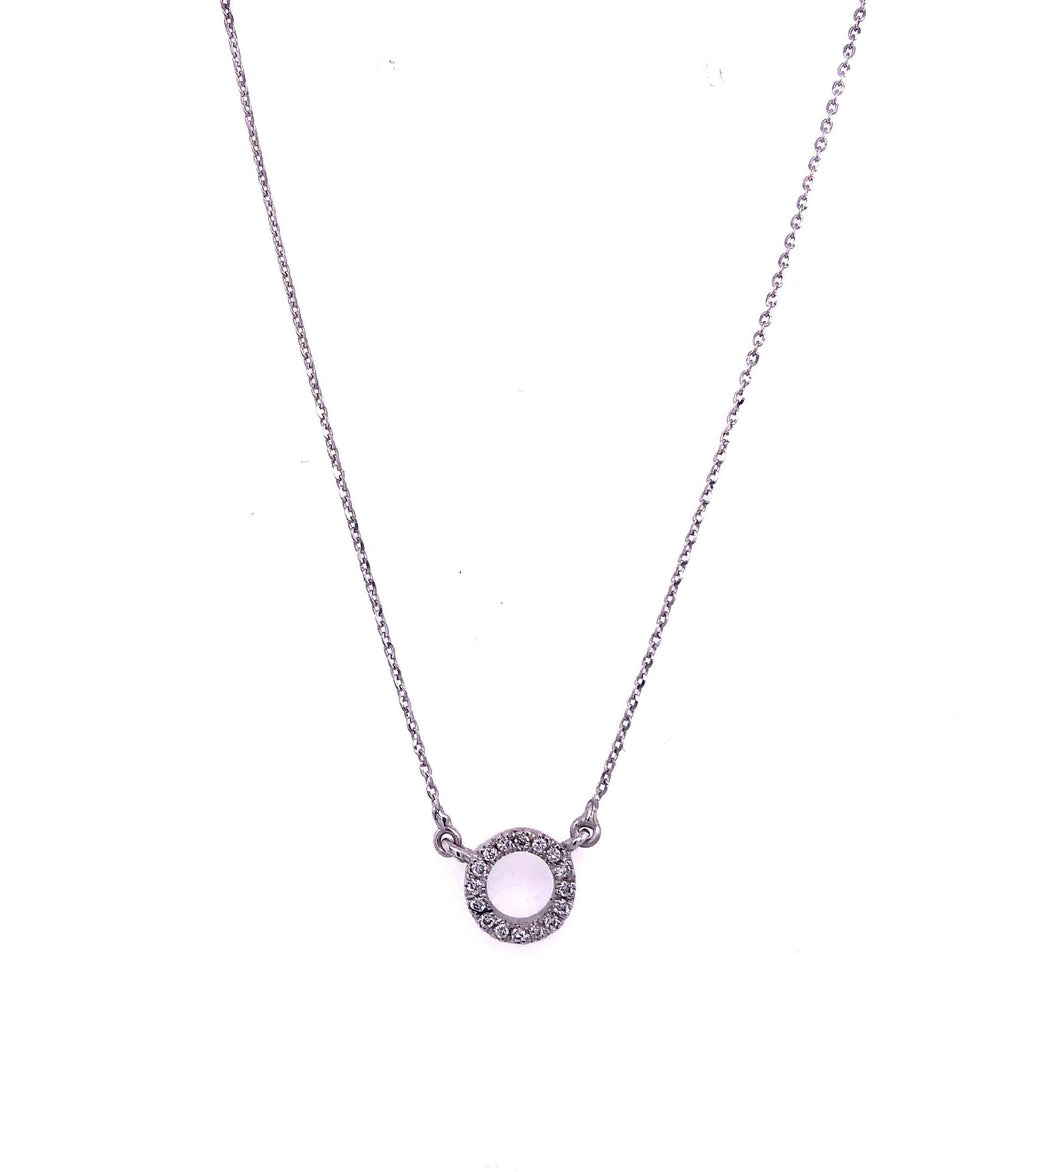 18ct White Gold Open Circle Diamond Necklet